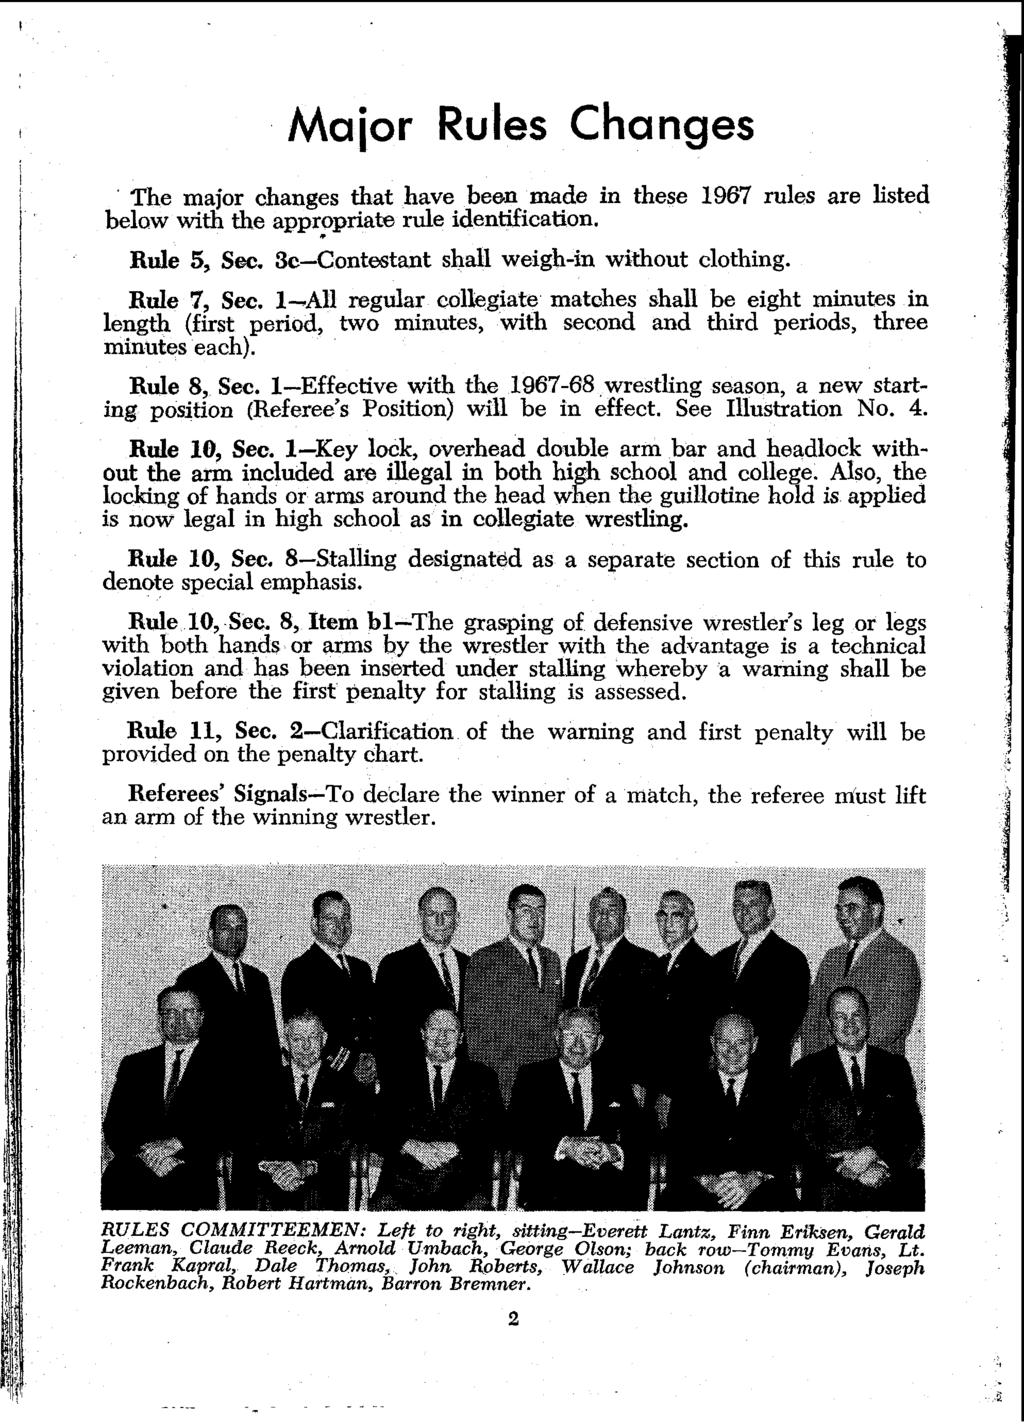 Major Rules Changes The major changes that have been made in these 1967 rules are listed below with the apprp~riate rule identification. Rule 5, Sec. 3c-Contestant shall weigh-in without clothing.